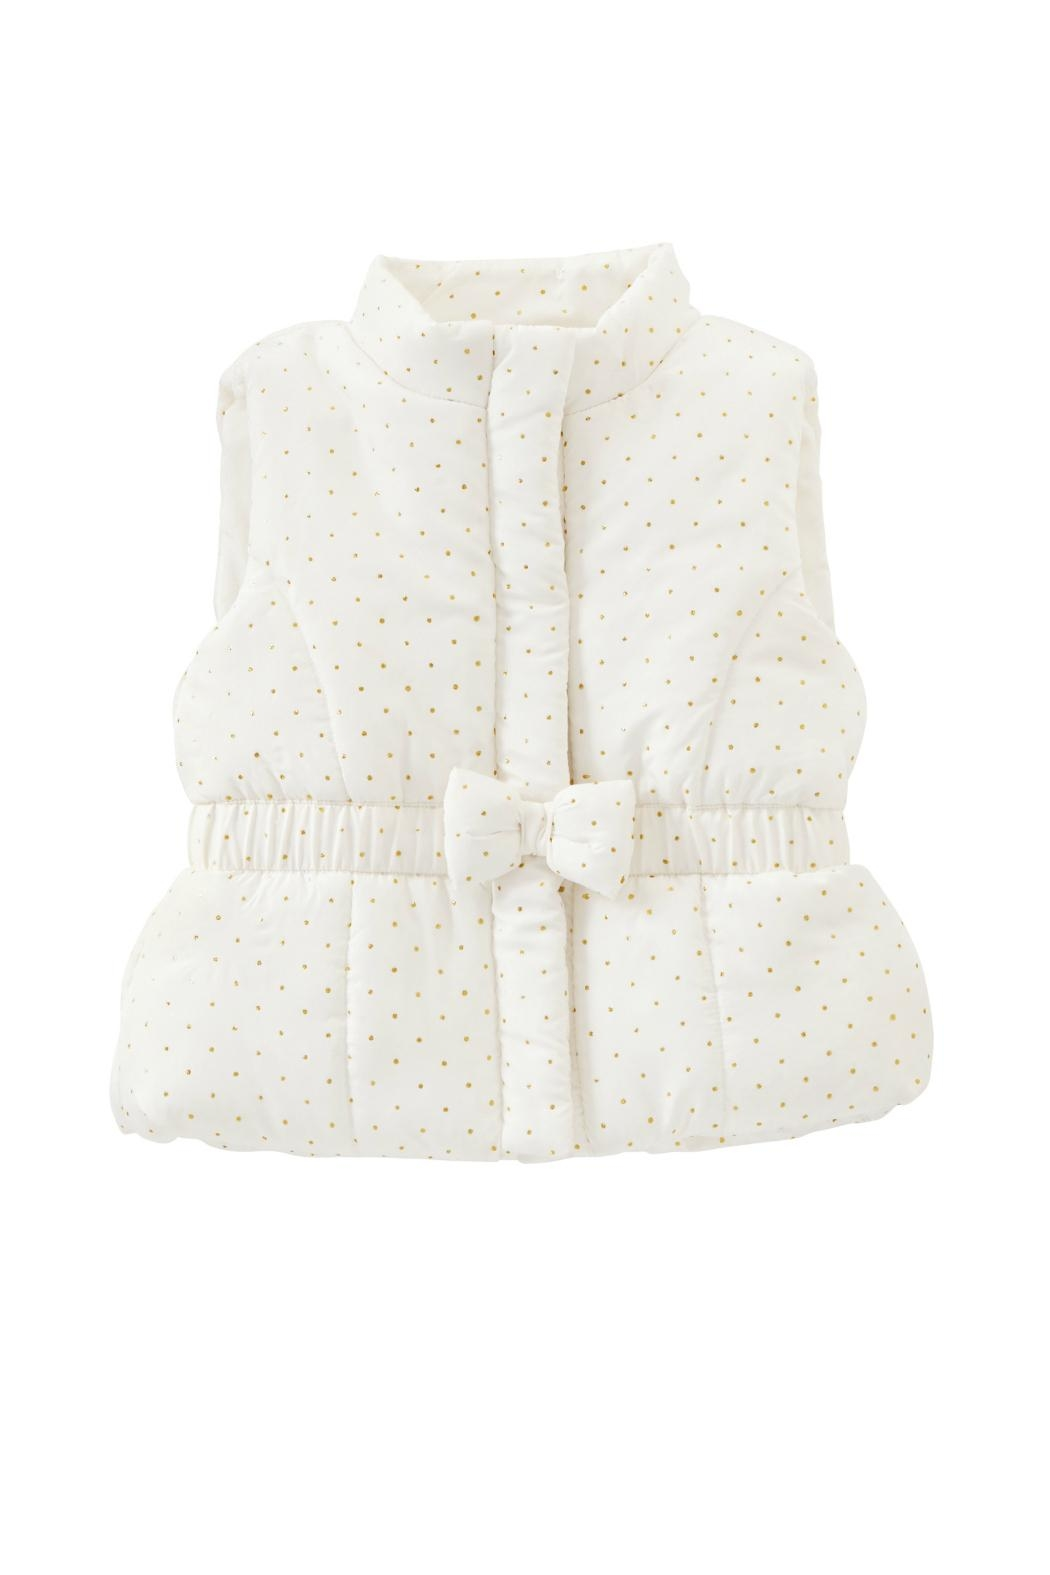 Mud Pie White Puffer Vest - Front Cropped Image